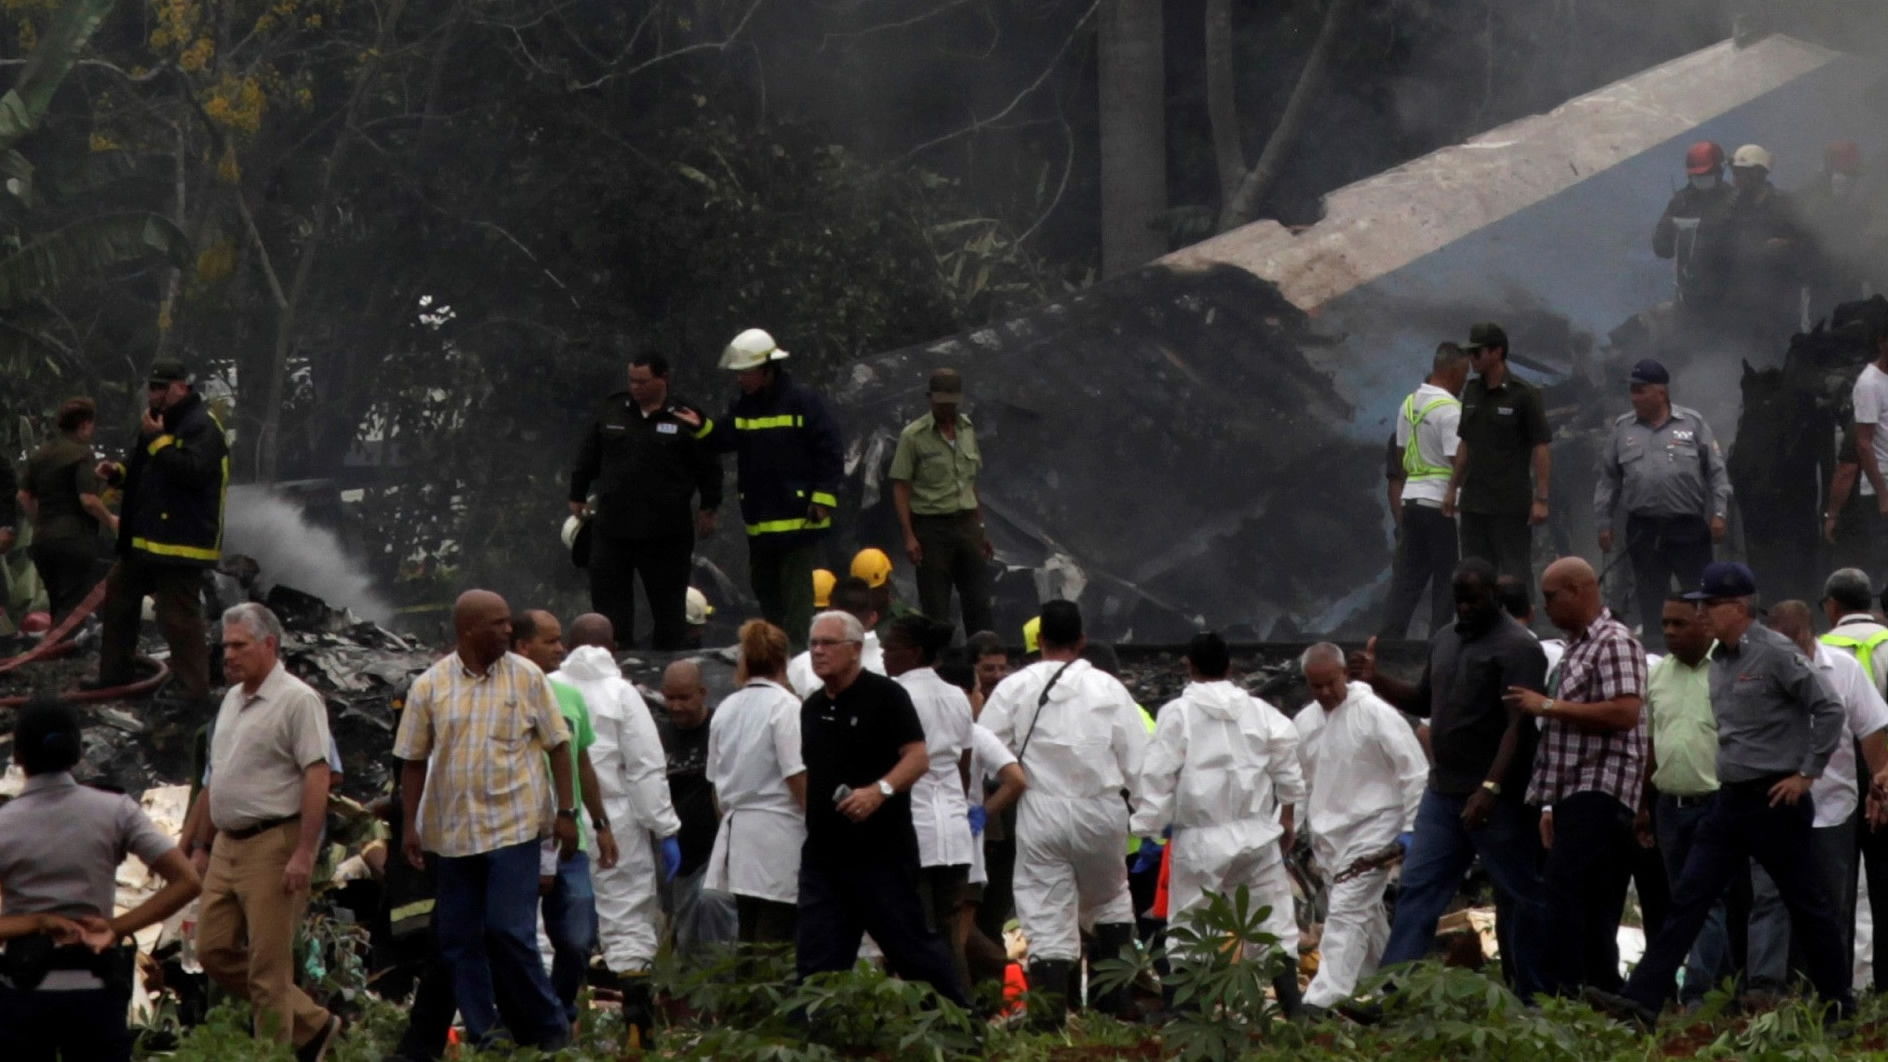 Cuba plane crash: 110 confirmed killed, black box recovered